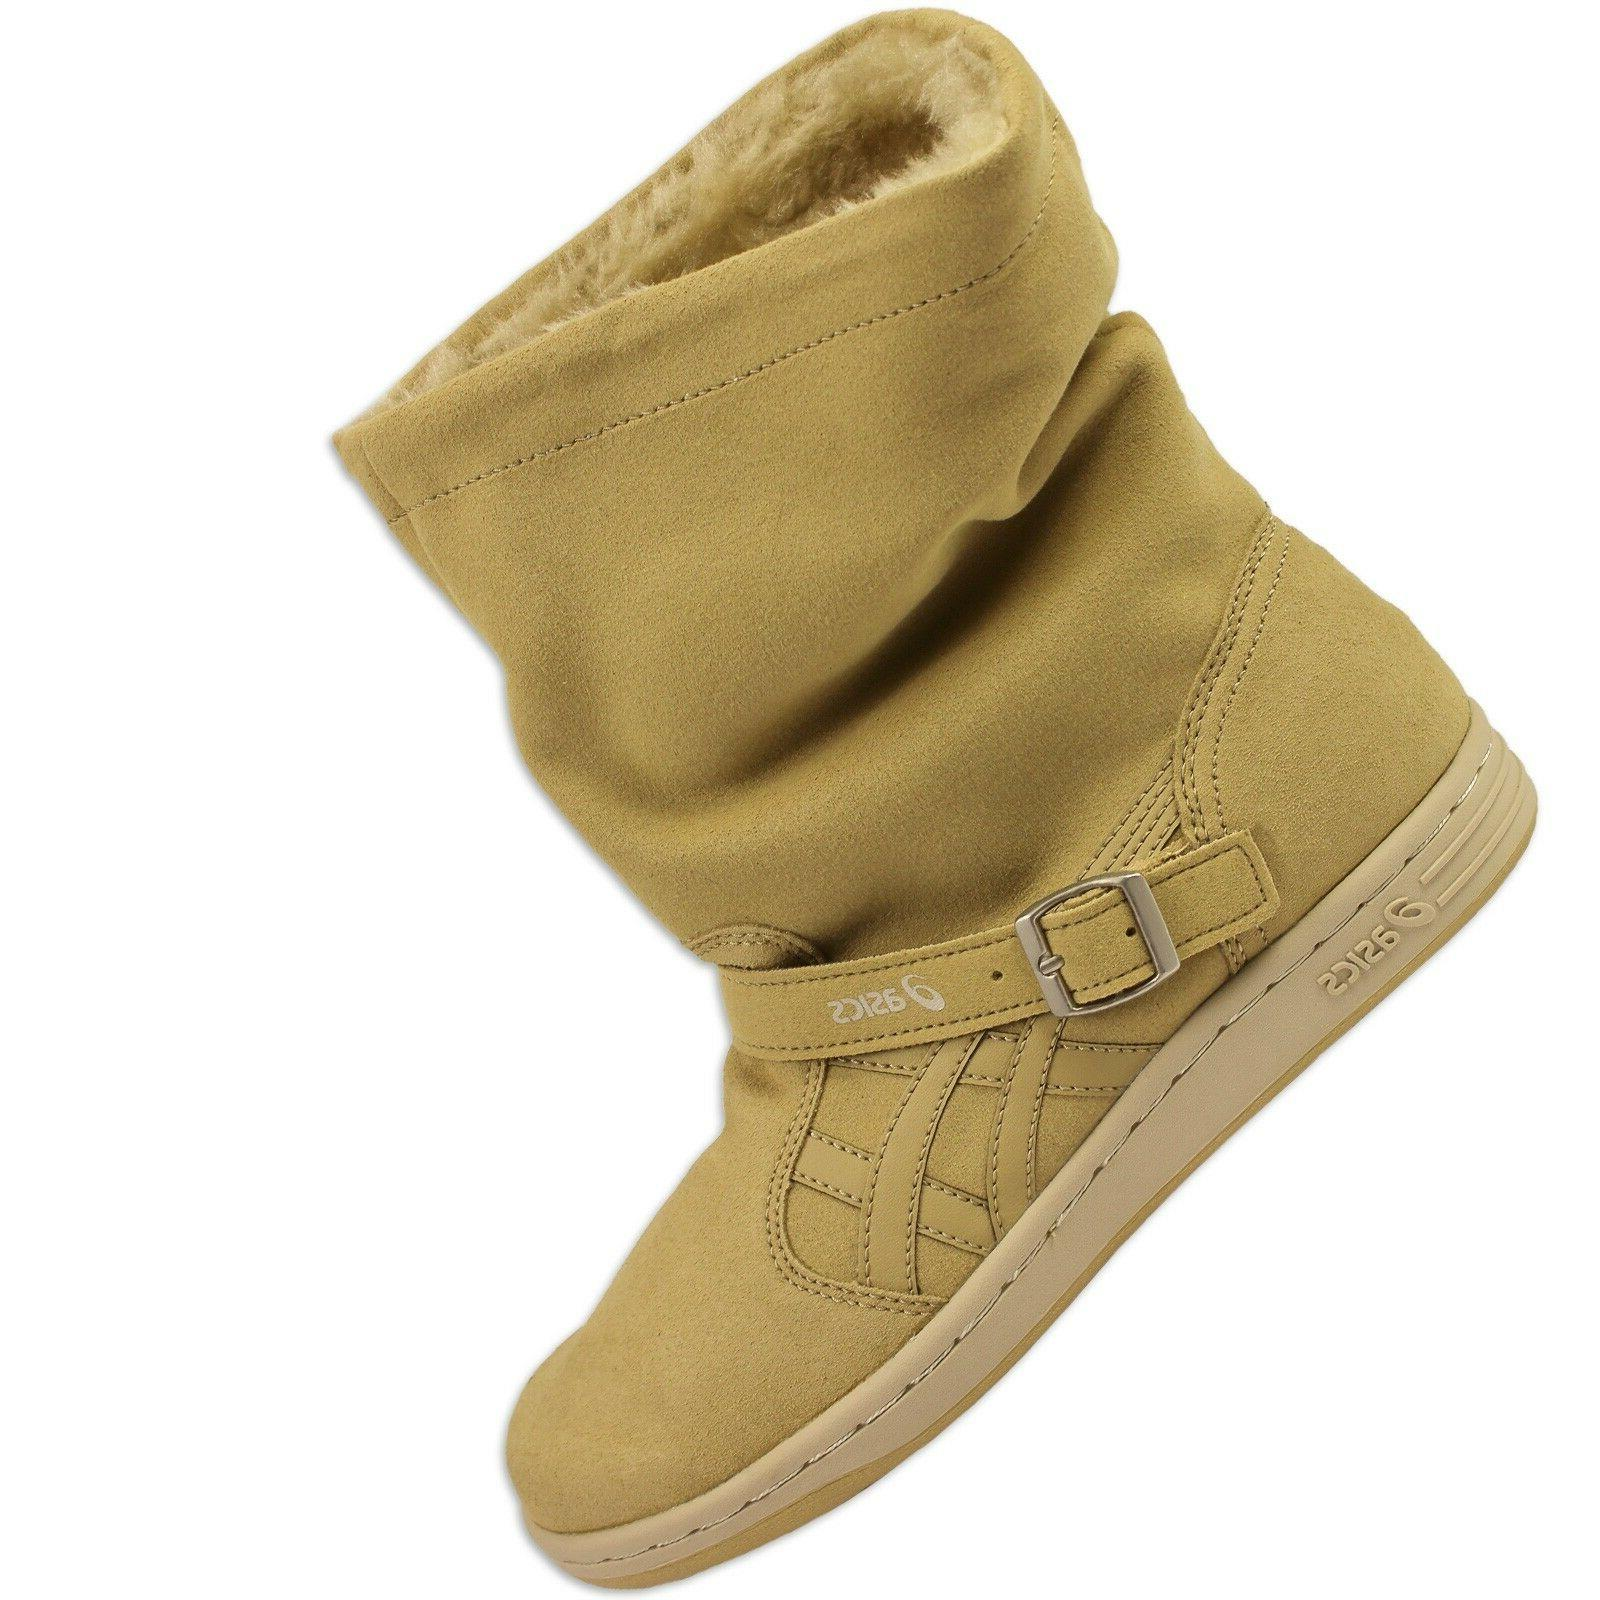 asics meriki winter boots ankle boots camel